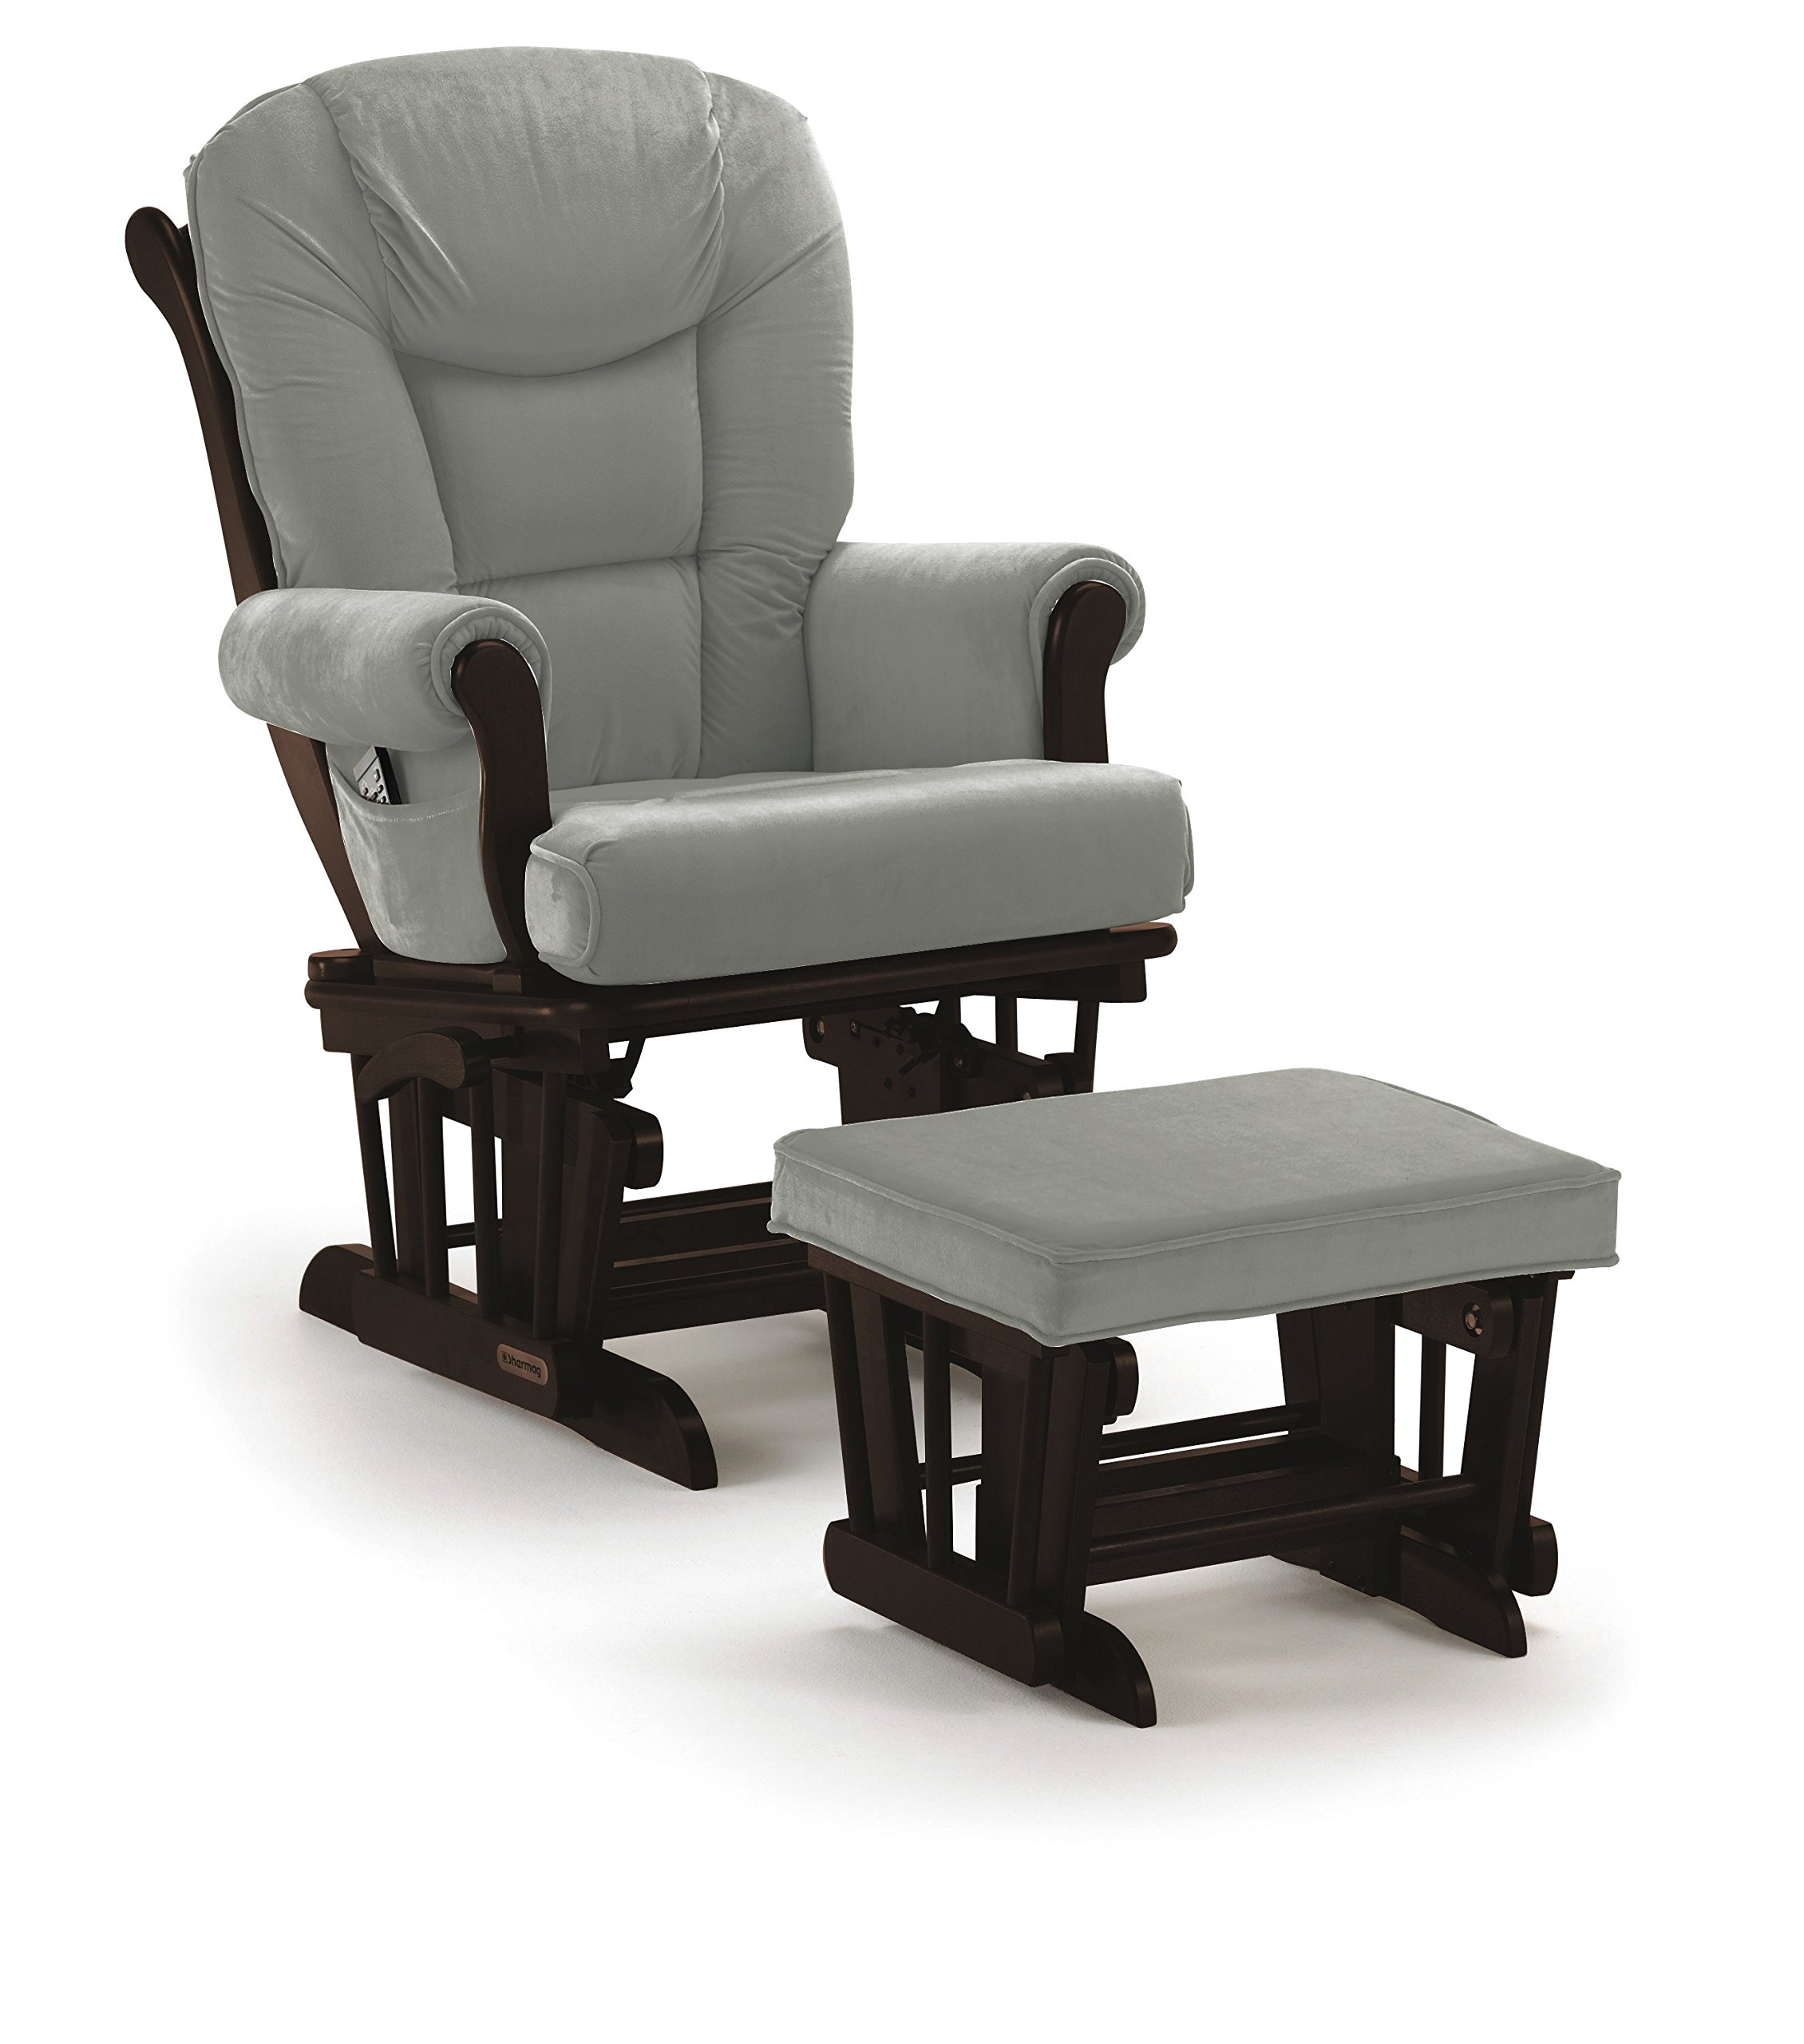 Lennox Multiposition-Lock Glider Chair and Ottoman Combo, Espresso with Grey by Lennox Furniture